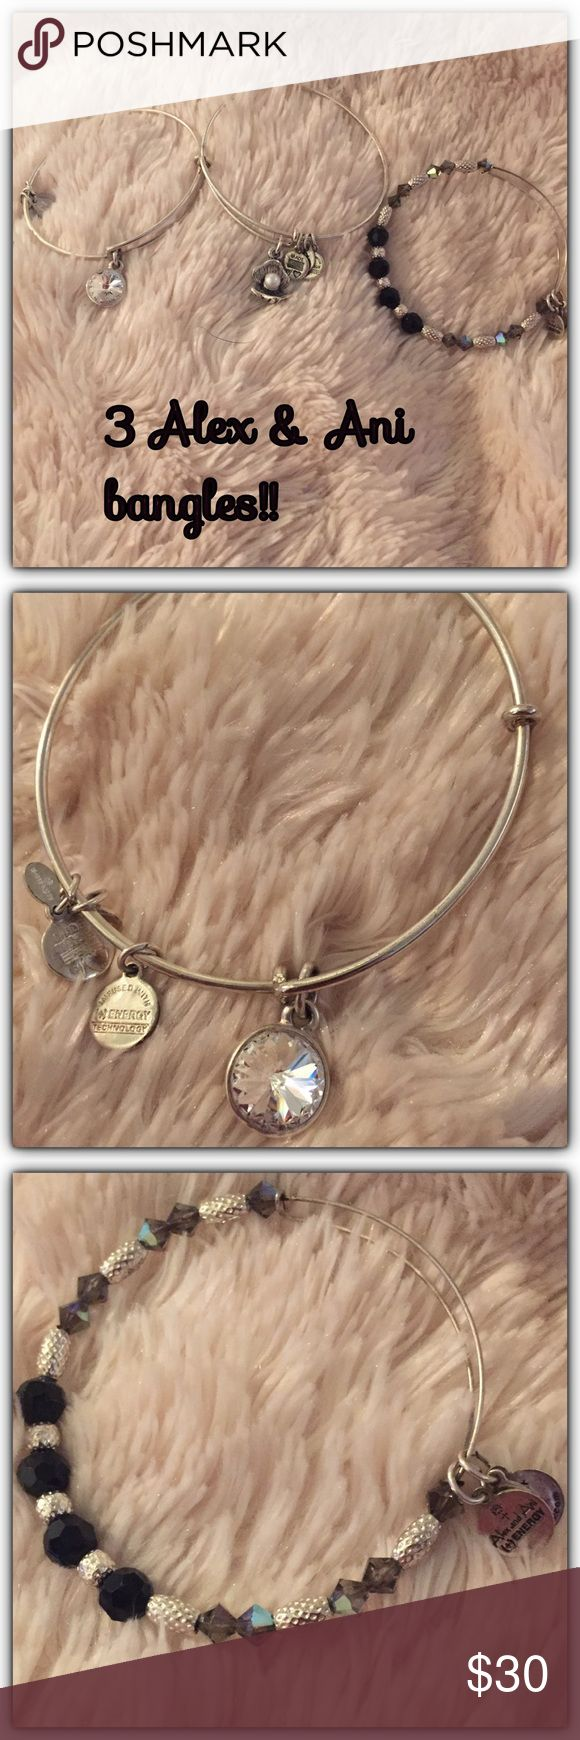 3 Alex & Ani bangles! 3 deal bundle of Alex & Ani silver bangles. One is svarkoski crystal bead, the other one is a multi-crystal black and silver and third is a pearl inside shell. Take all for this low price! Real Alex and Ani! Alex & Ani Jewelry Bracelets